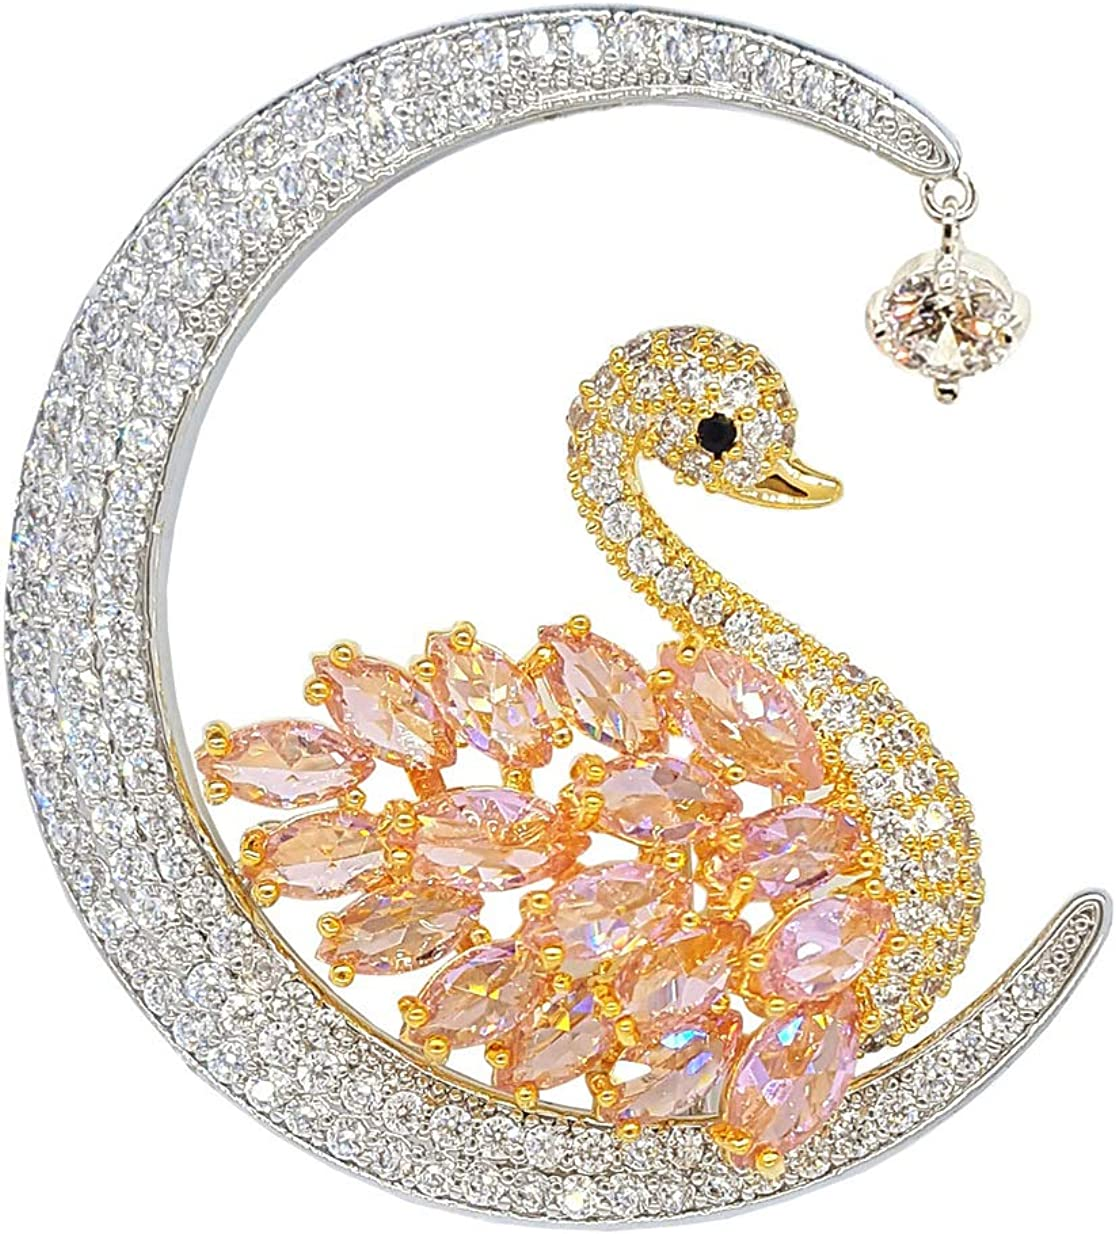 Newvision1981 Brooches for Women Pink Bird Swan Moon Crystal Jewelry Animal Pins,Large